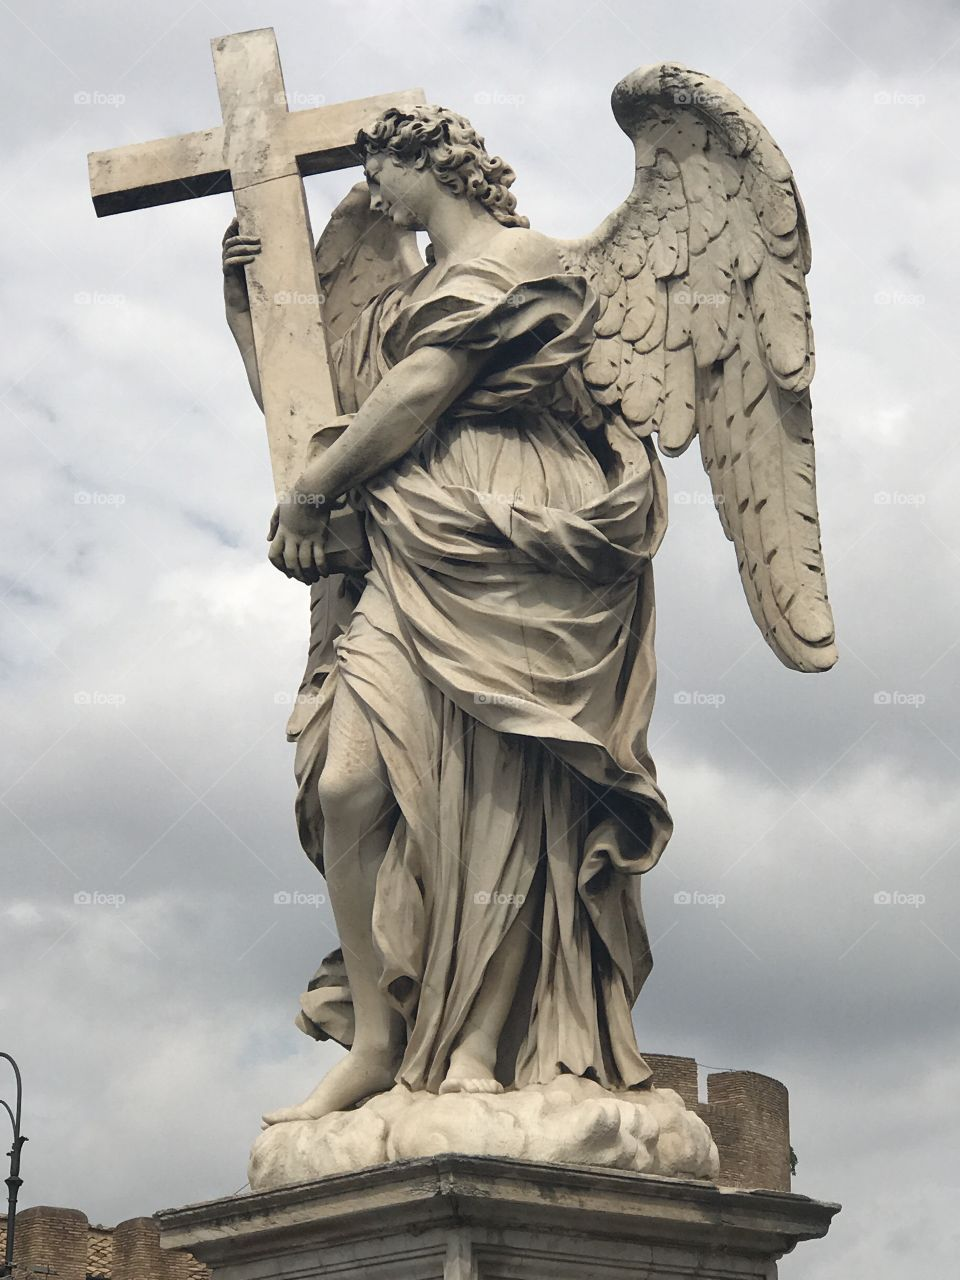 Angels in Rome